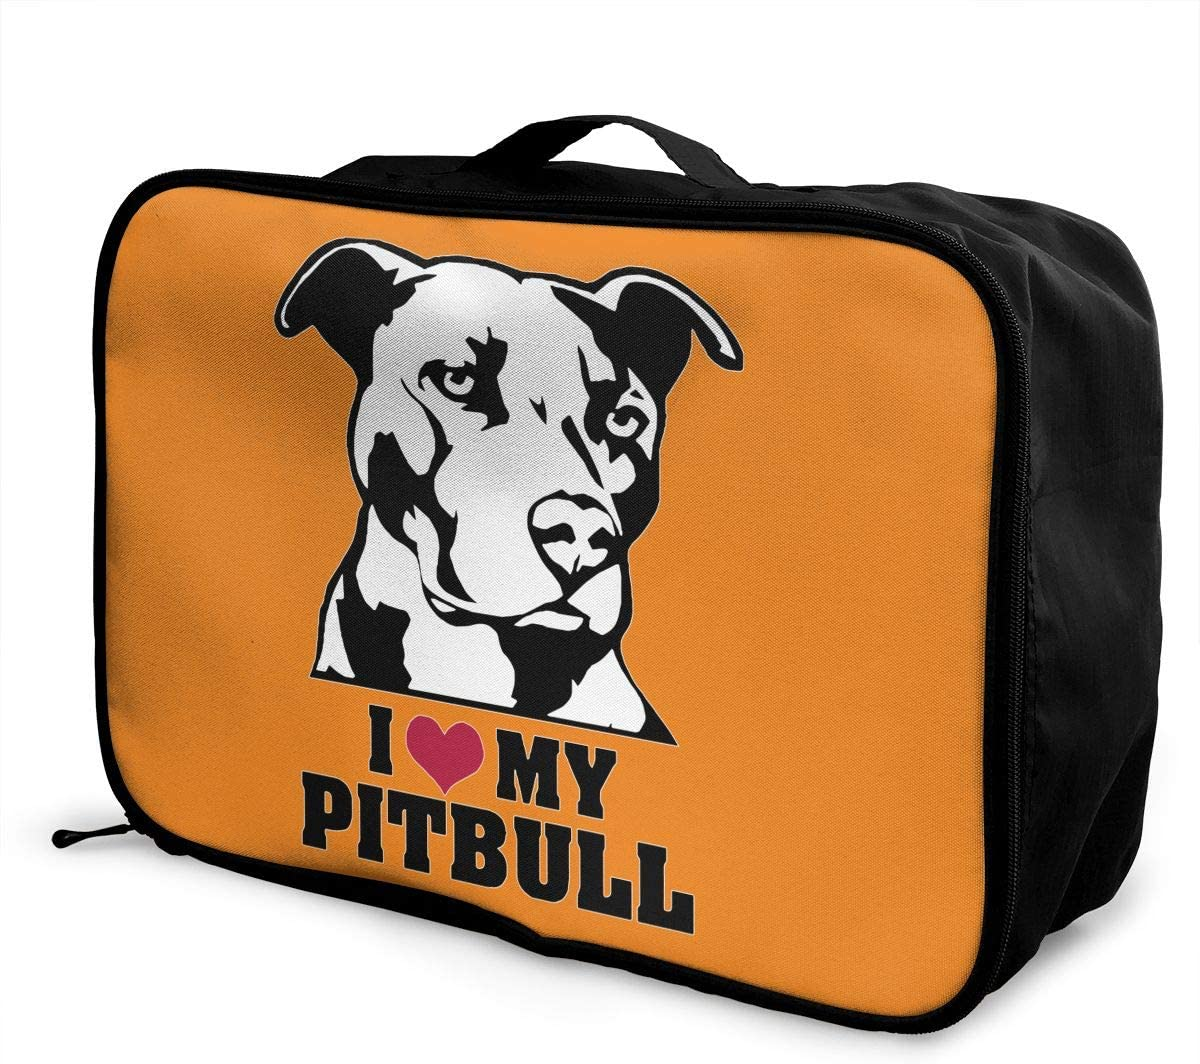 I Love My Pitbull Staffy Terrier Dog Carry Lightweight Large Capacity Portable Outdoor Luggage Trolley Bag